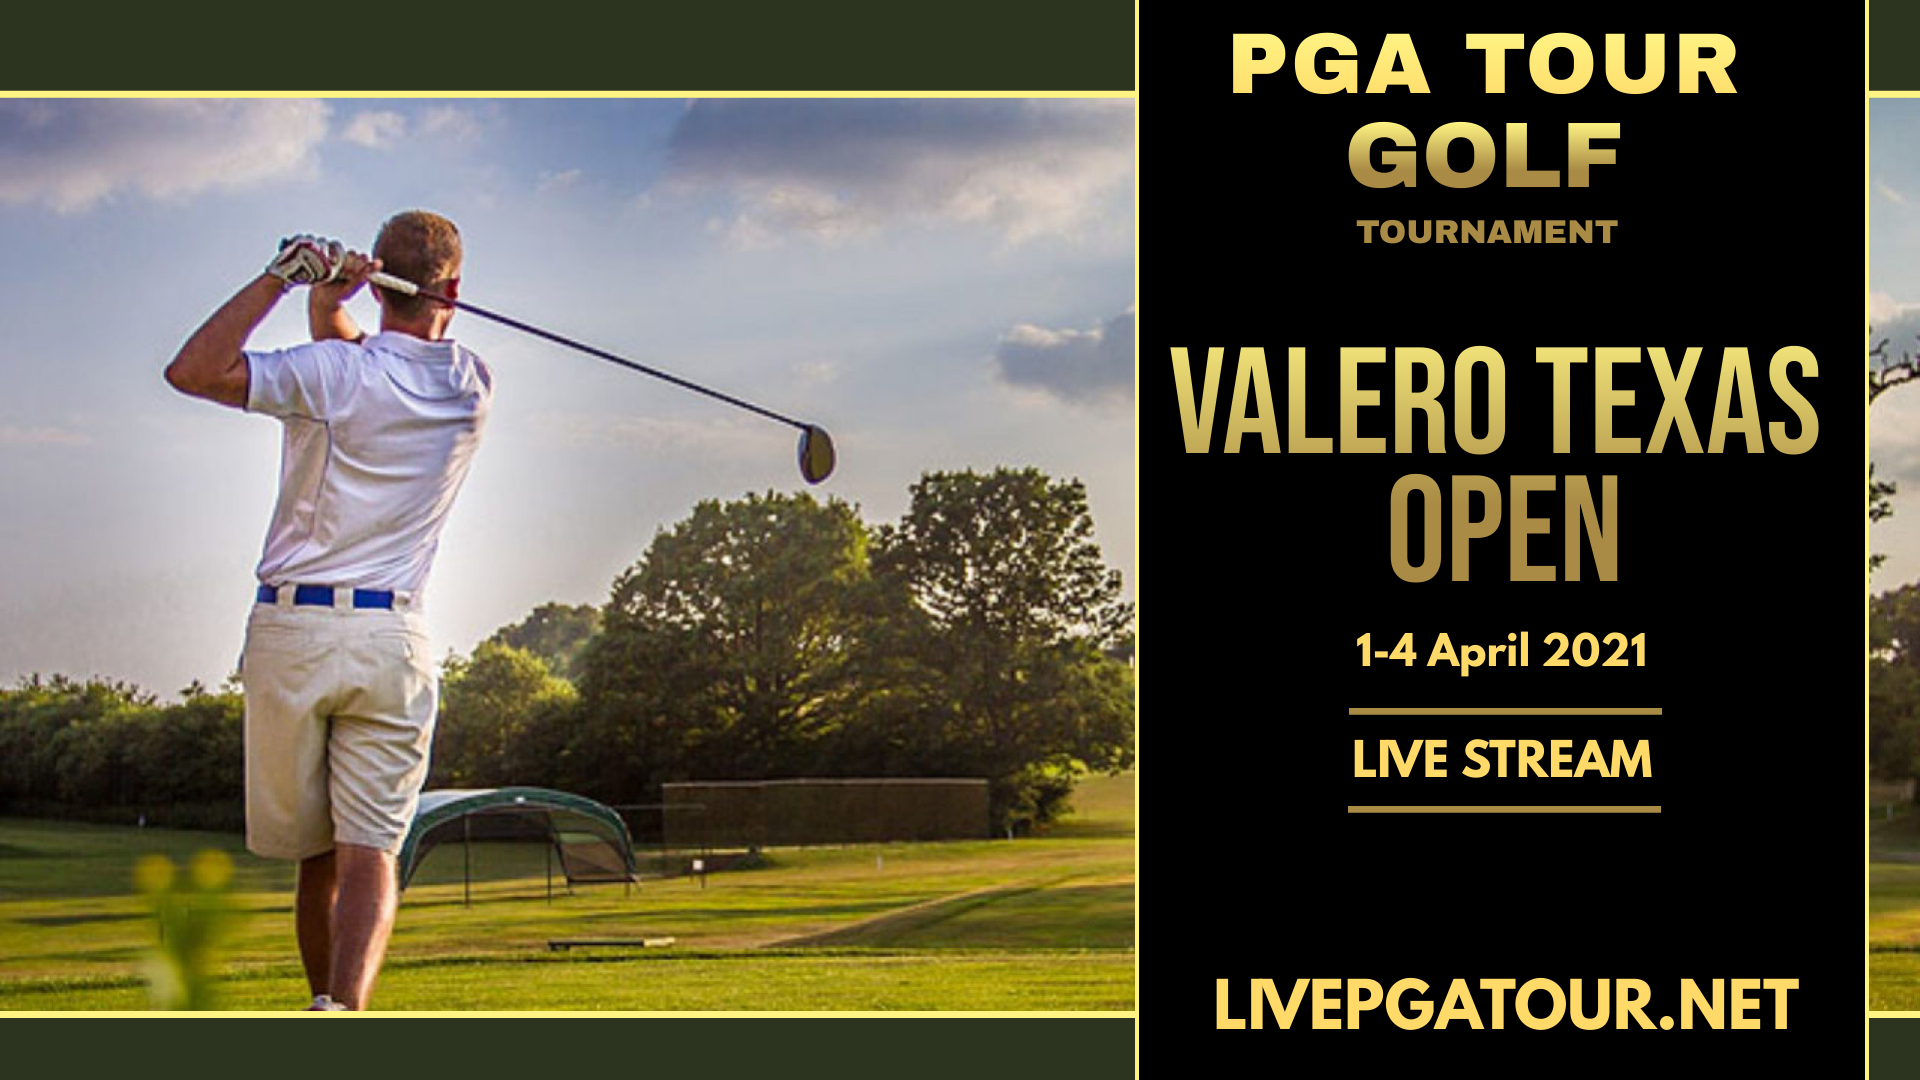 Valero Texas Open Live Stream 2021: PGA Tour Day 4